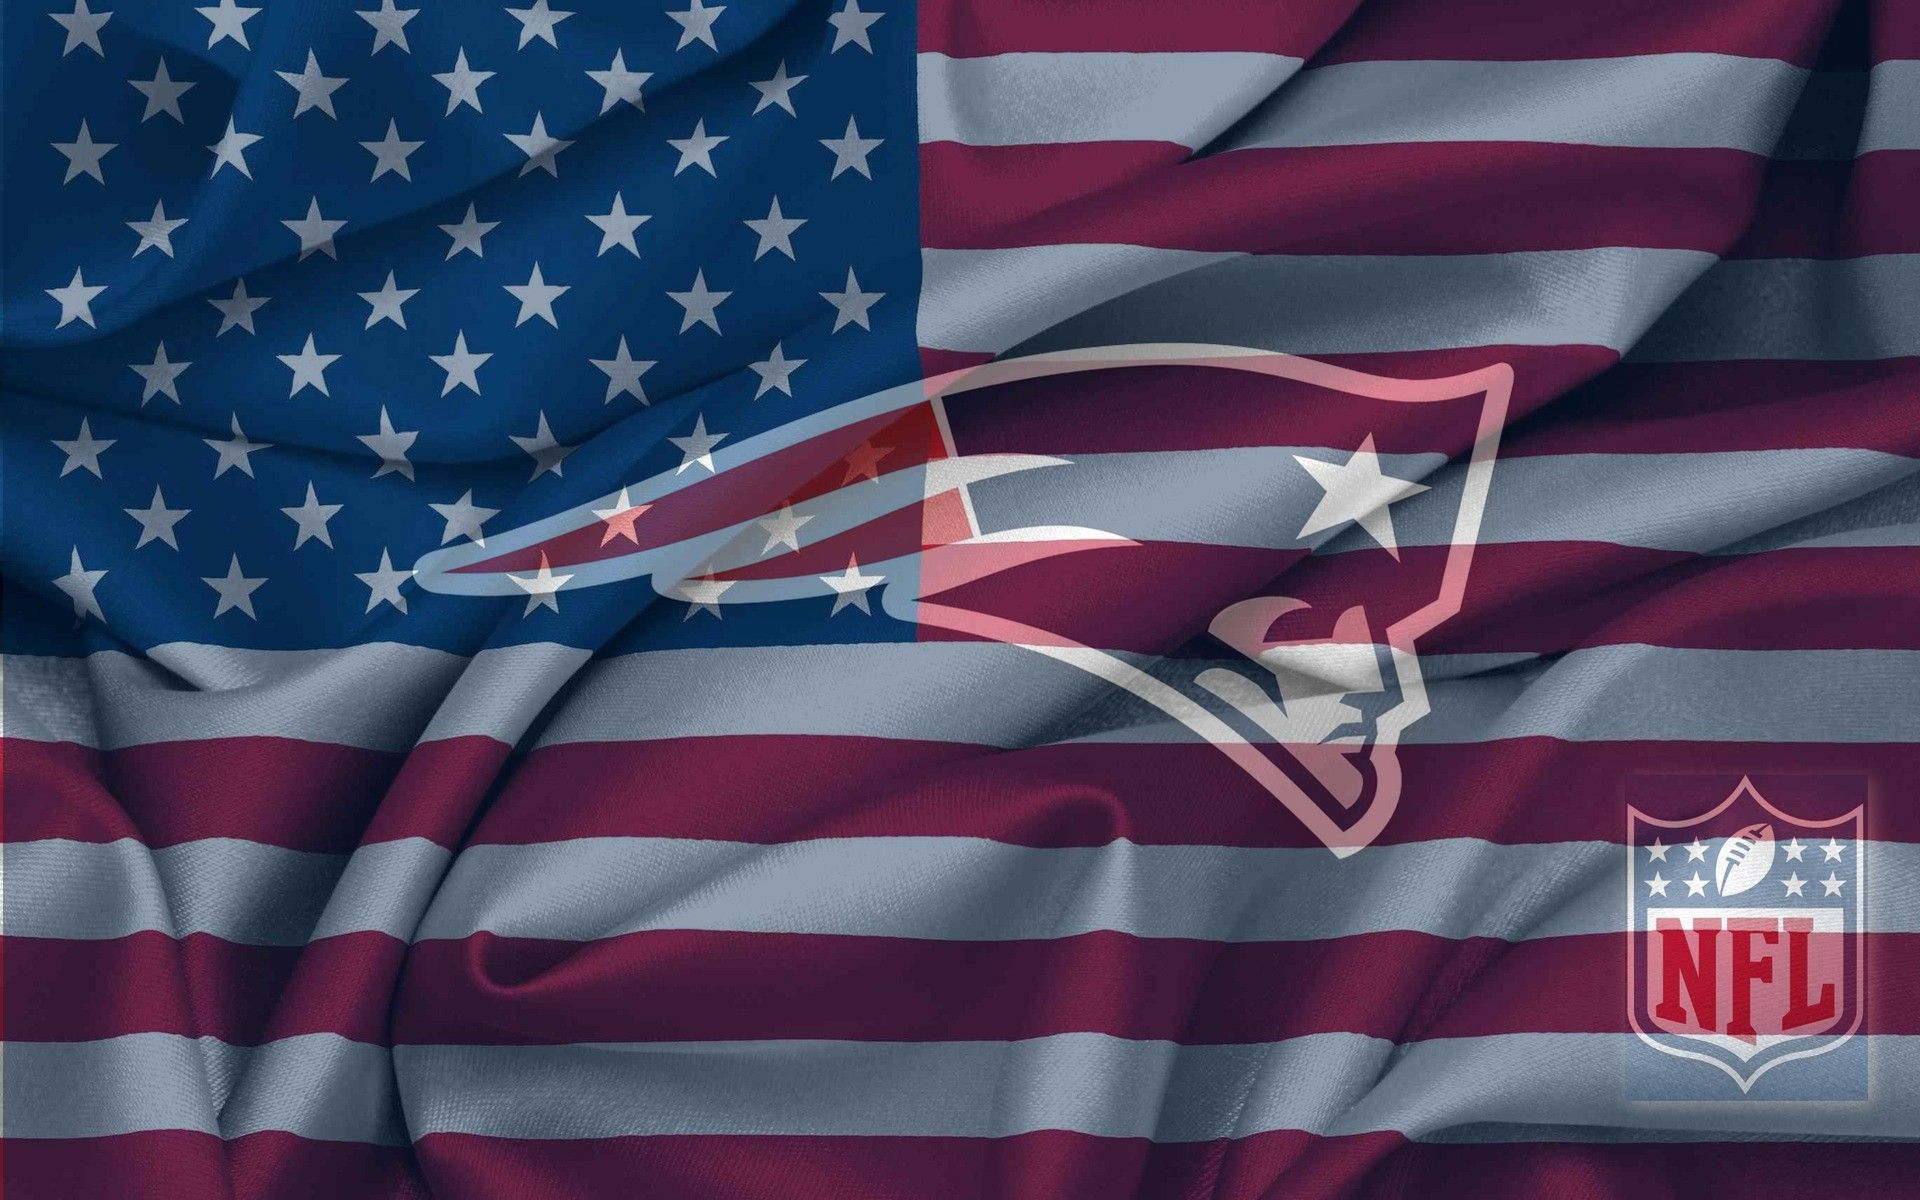 New England Patriots Images New England Patriots Logo With Nfl Logo On Usa Flag New England Patriots Logo New England Patriots Wallpaper New England Patriots